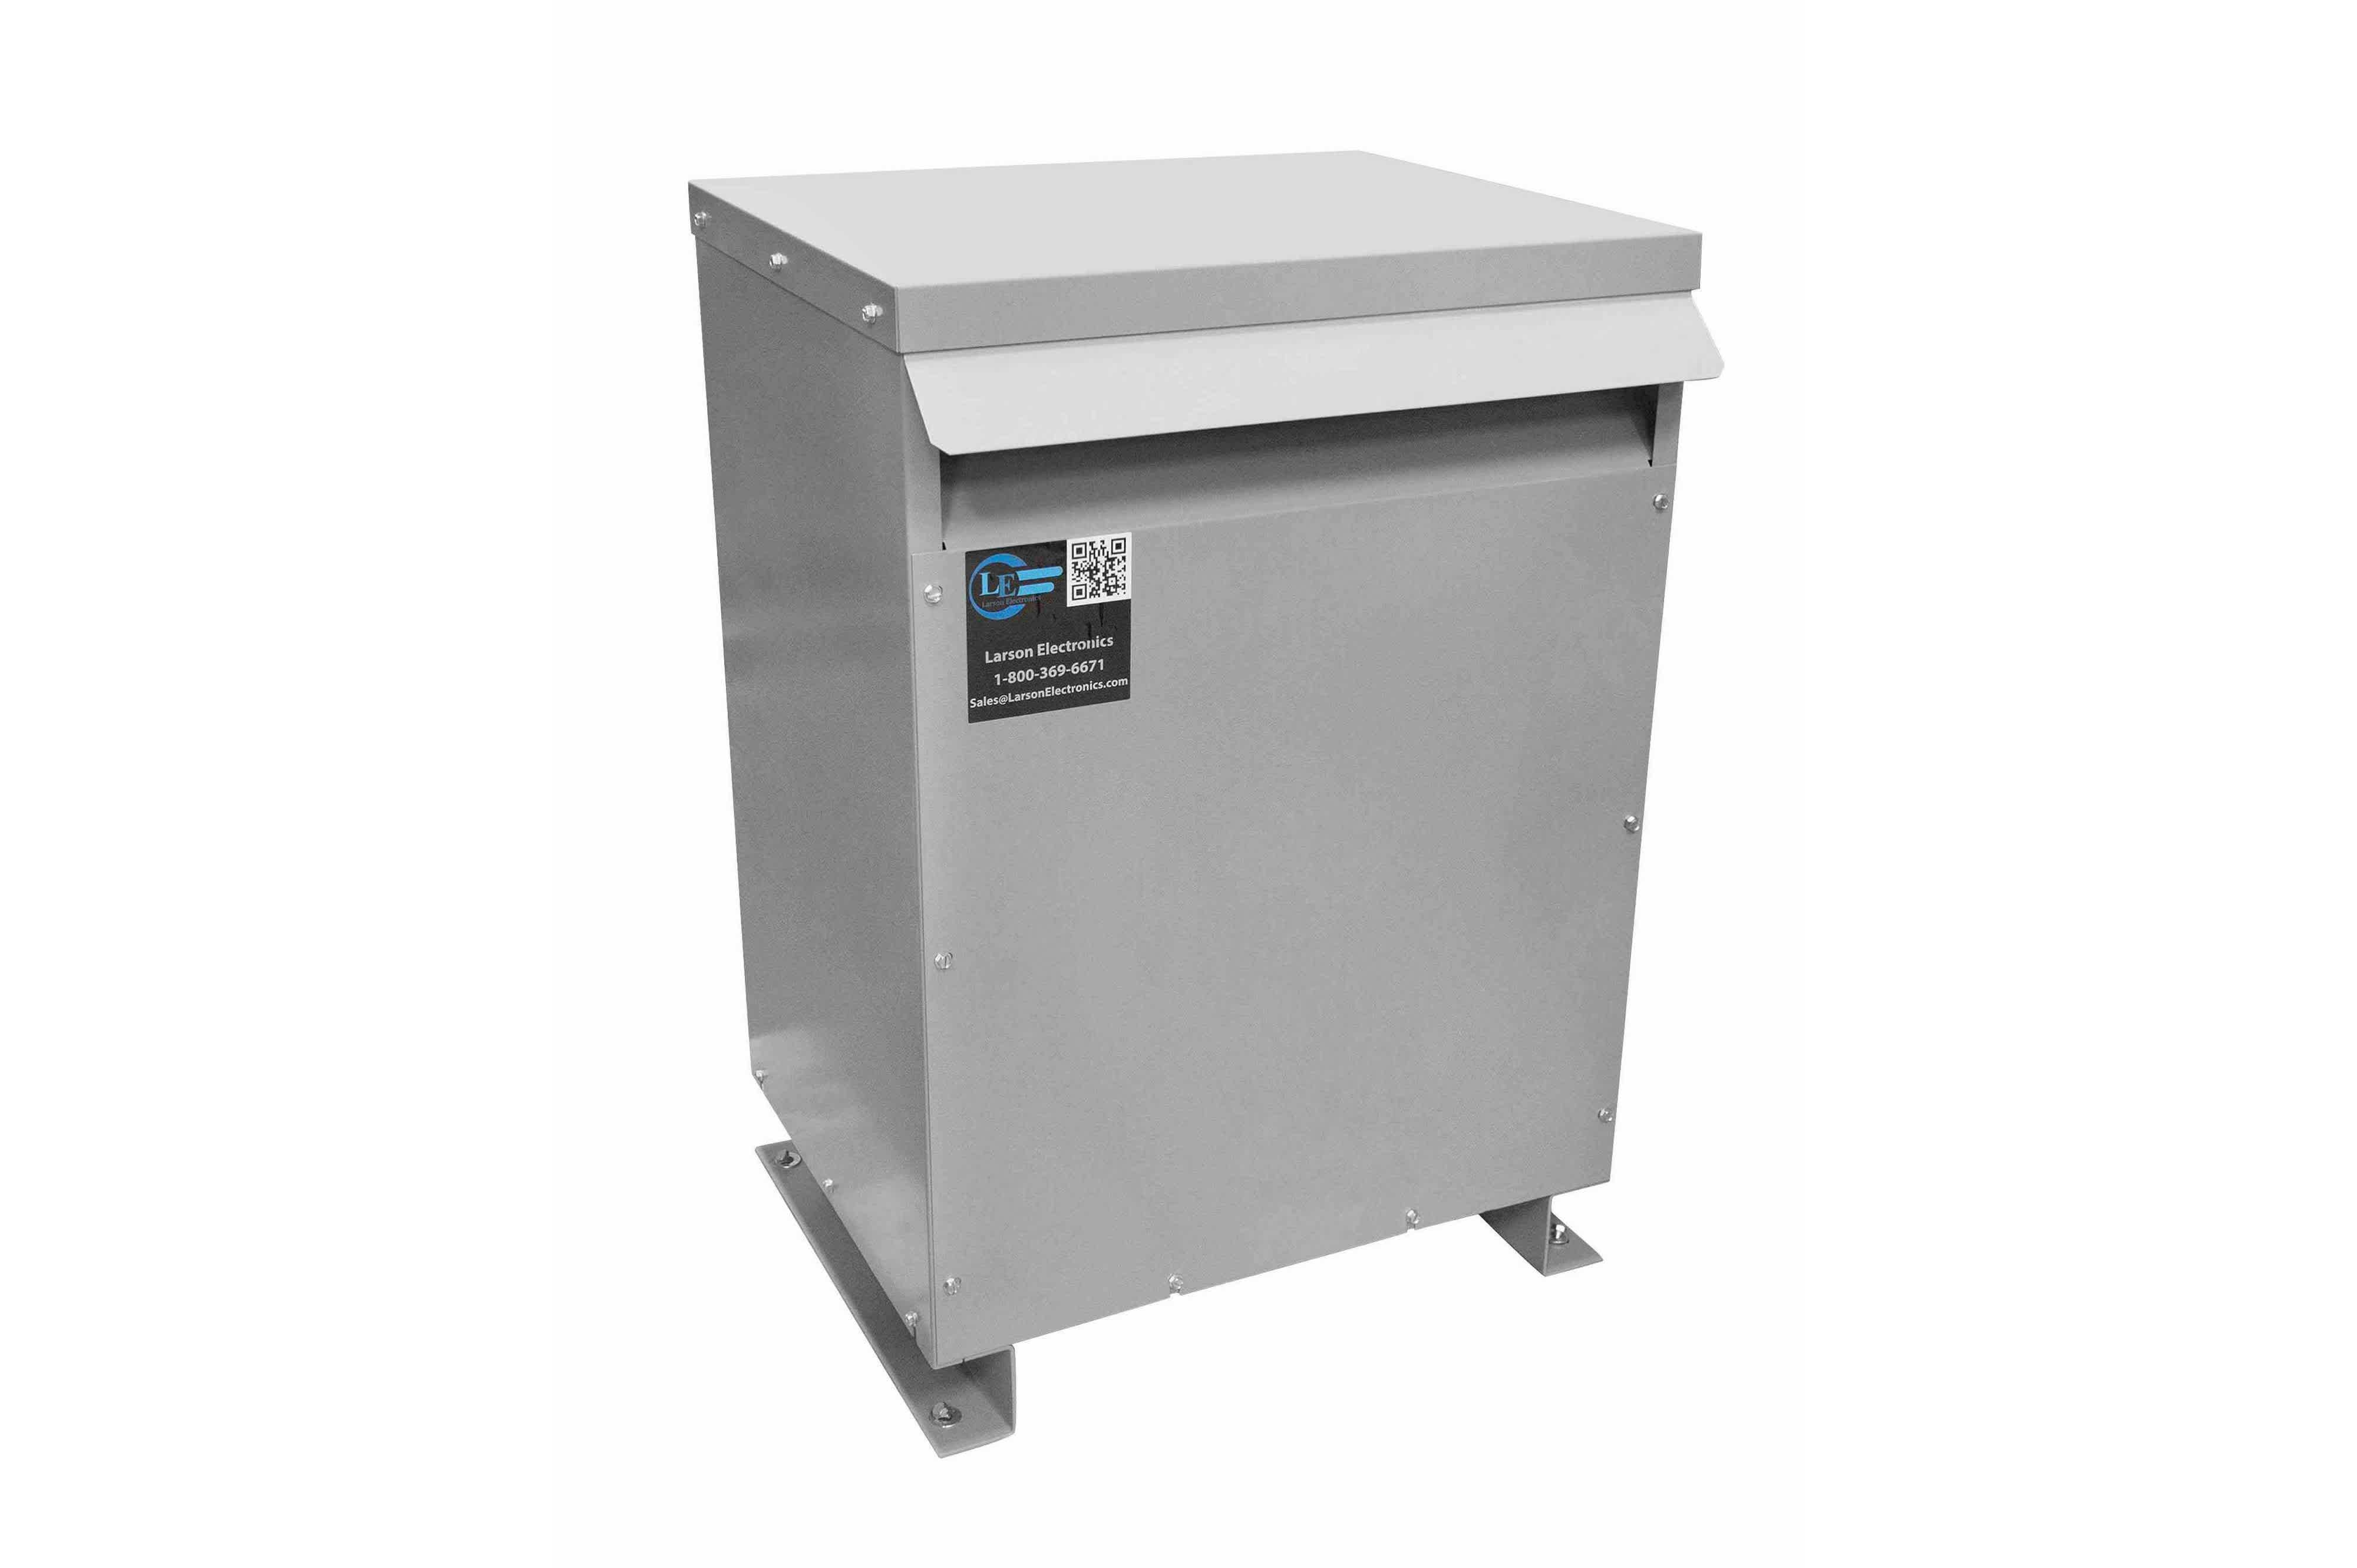 750 kVA 3PH DOE Transformer, 415V Delta Primary, 240V/120 Delta Secondary, N3R, Ventilated, 60 Hz